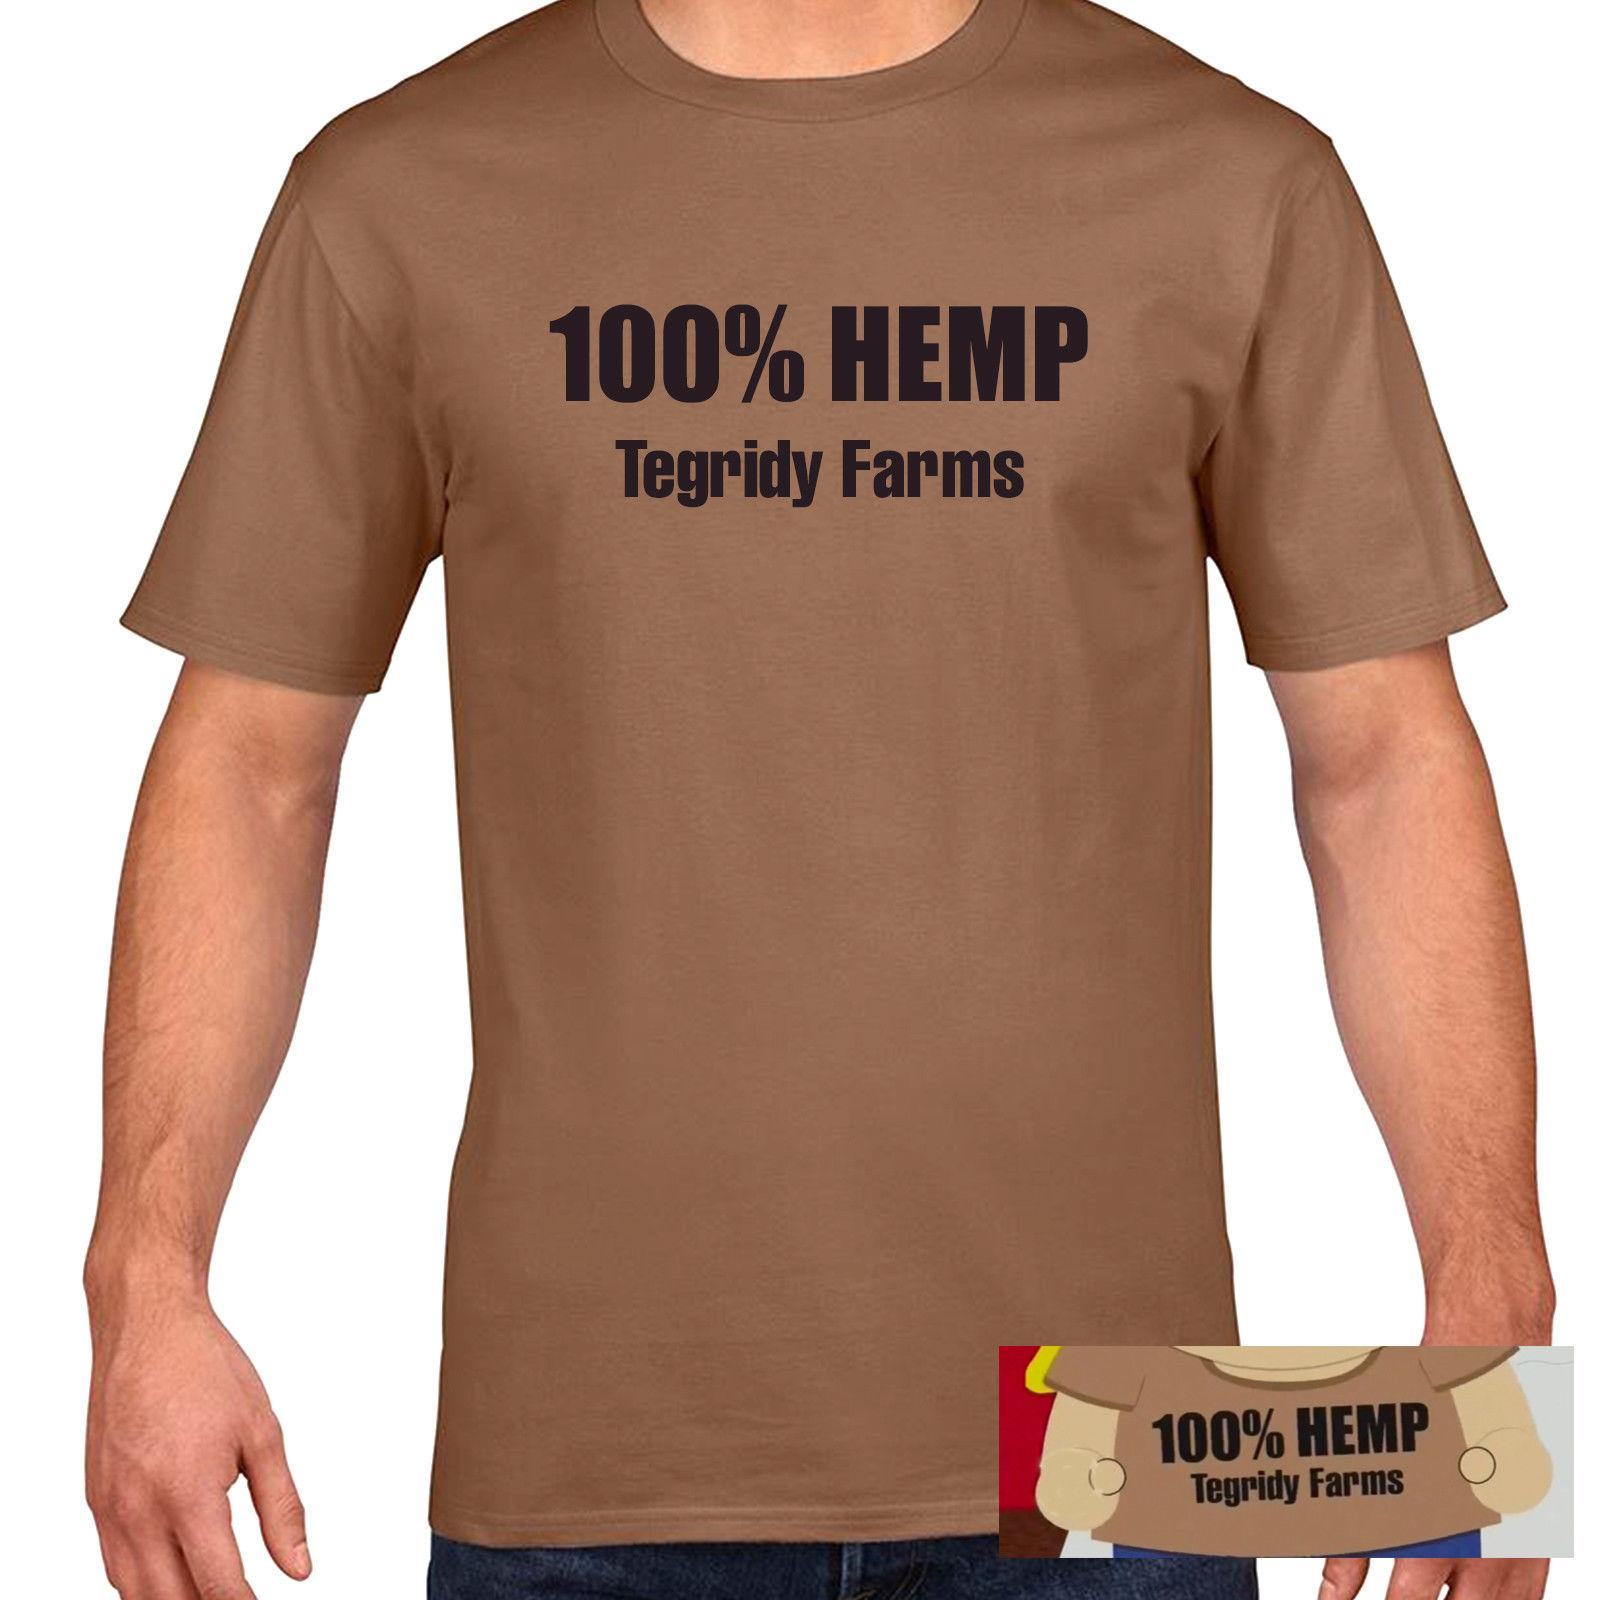 7cbe7e7f Tegridy Farms 100% Hemp T Shirt Randy Marsh Kyle South Park TV Comedy Funny  Funny Unisex Casual Top T Shirts Designer Funny Tee Shirt From Dappachappy,  ...